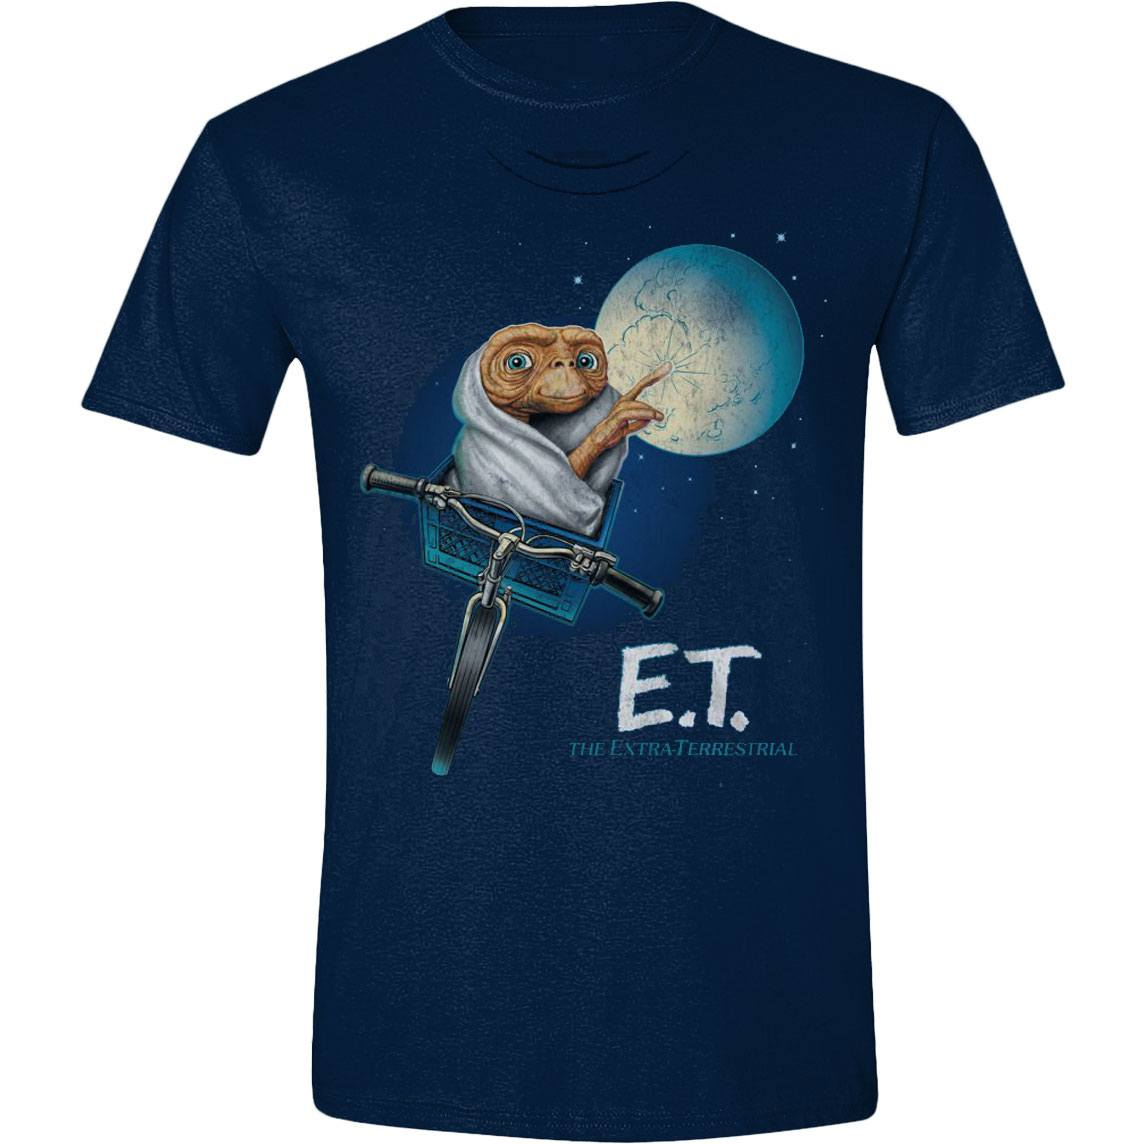 E.T. the Extra-Terrestrial T-Shirt Moon Bicycle Size S